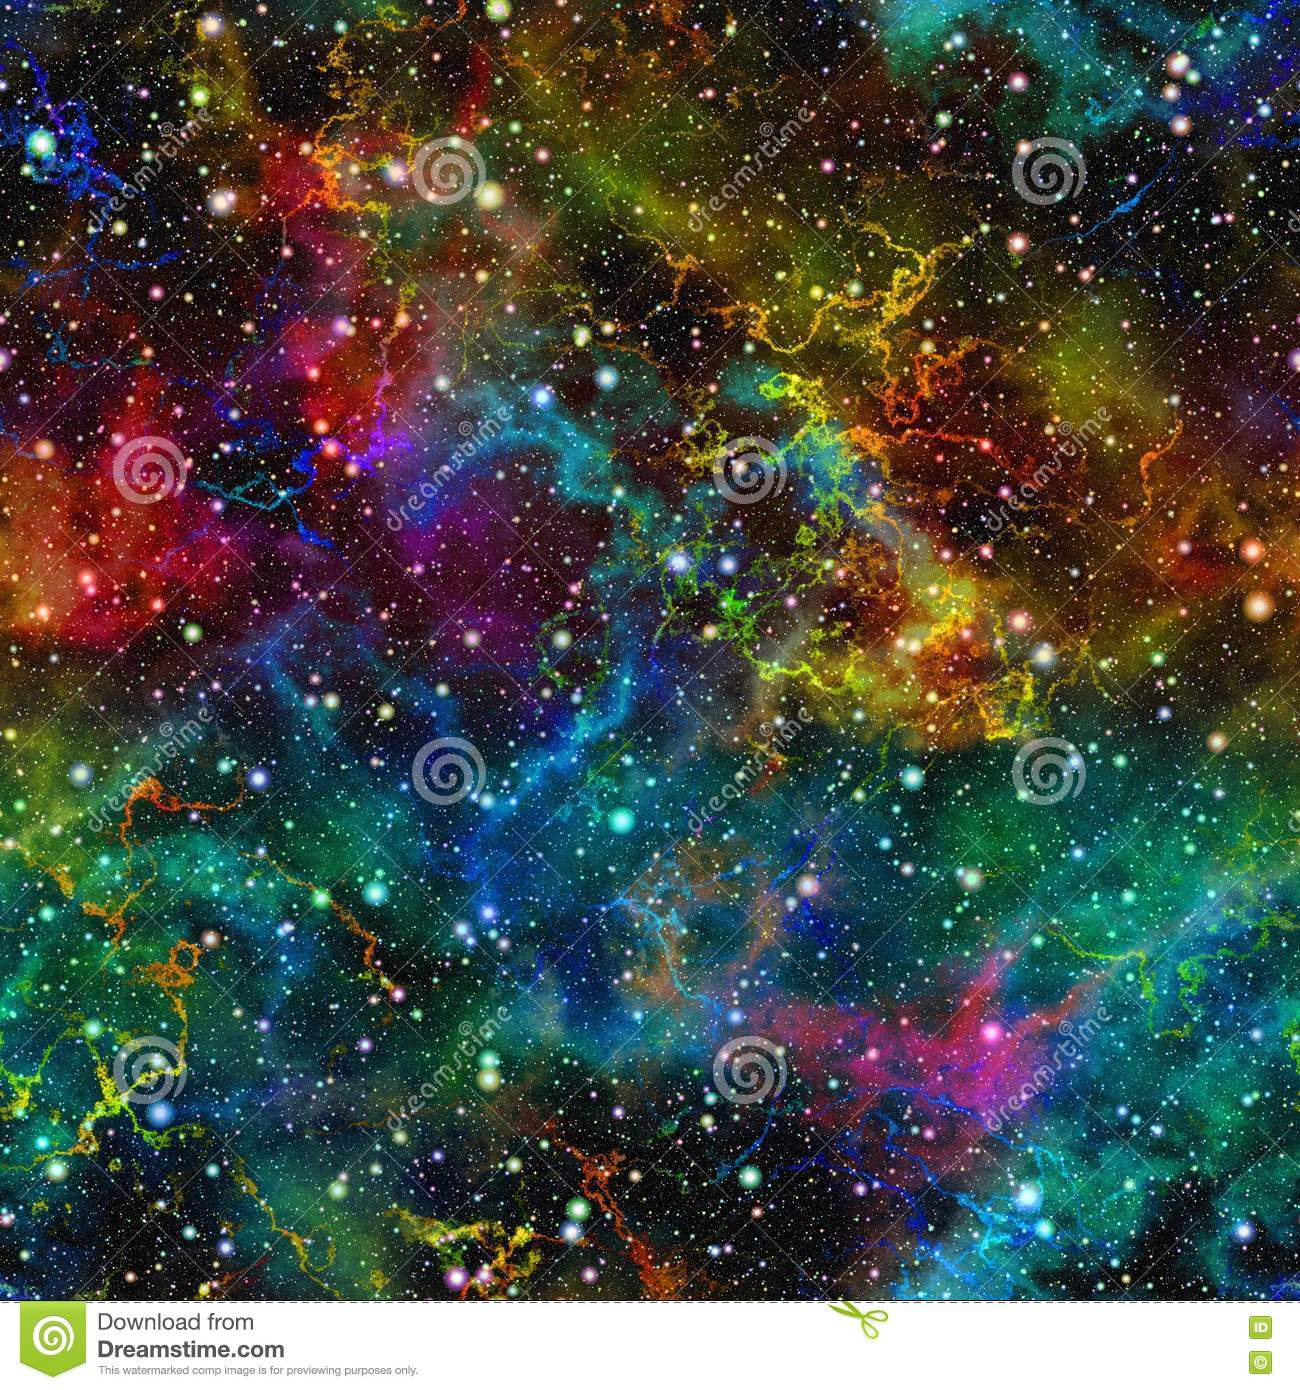 Abstract colorful universe. Nebula night starry sky. Multicolor outer space. Texture background. Seamless illustration.